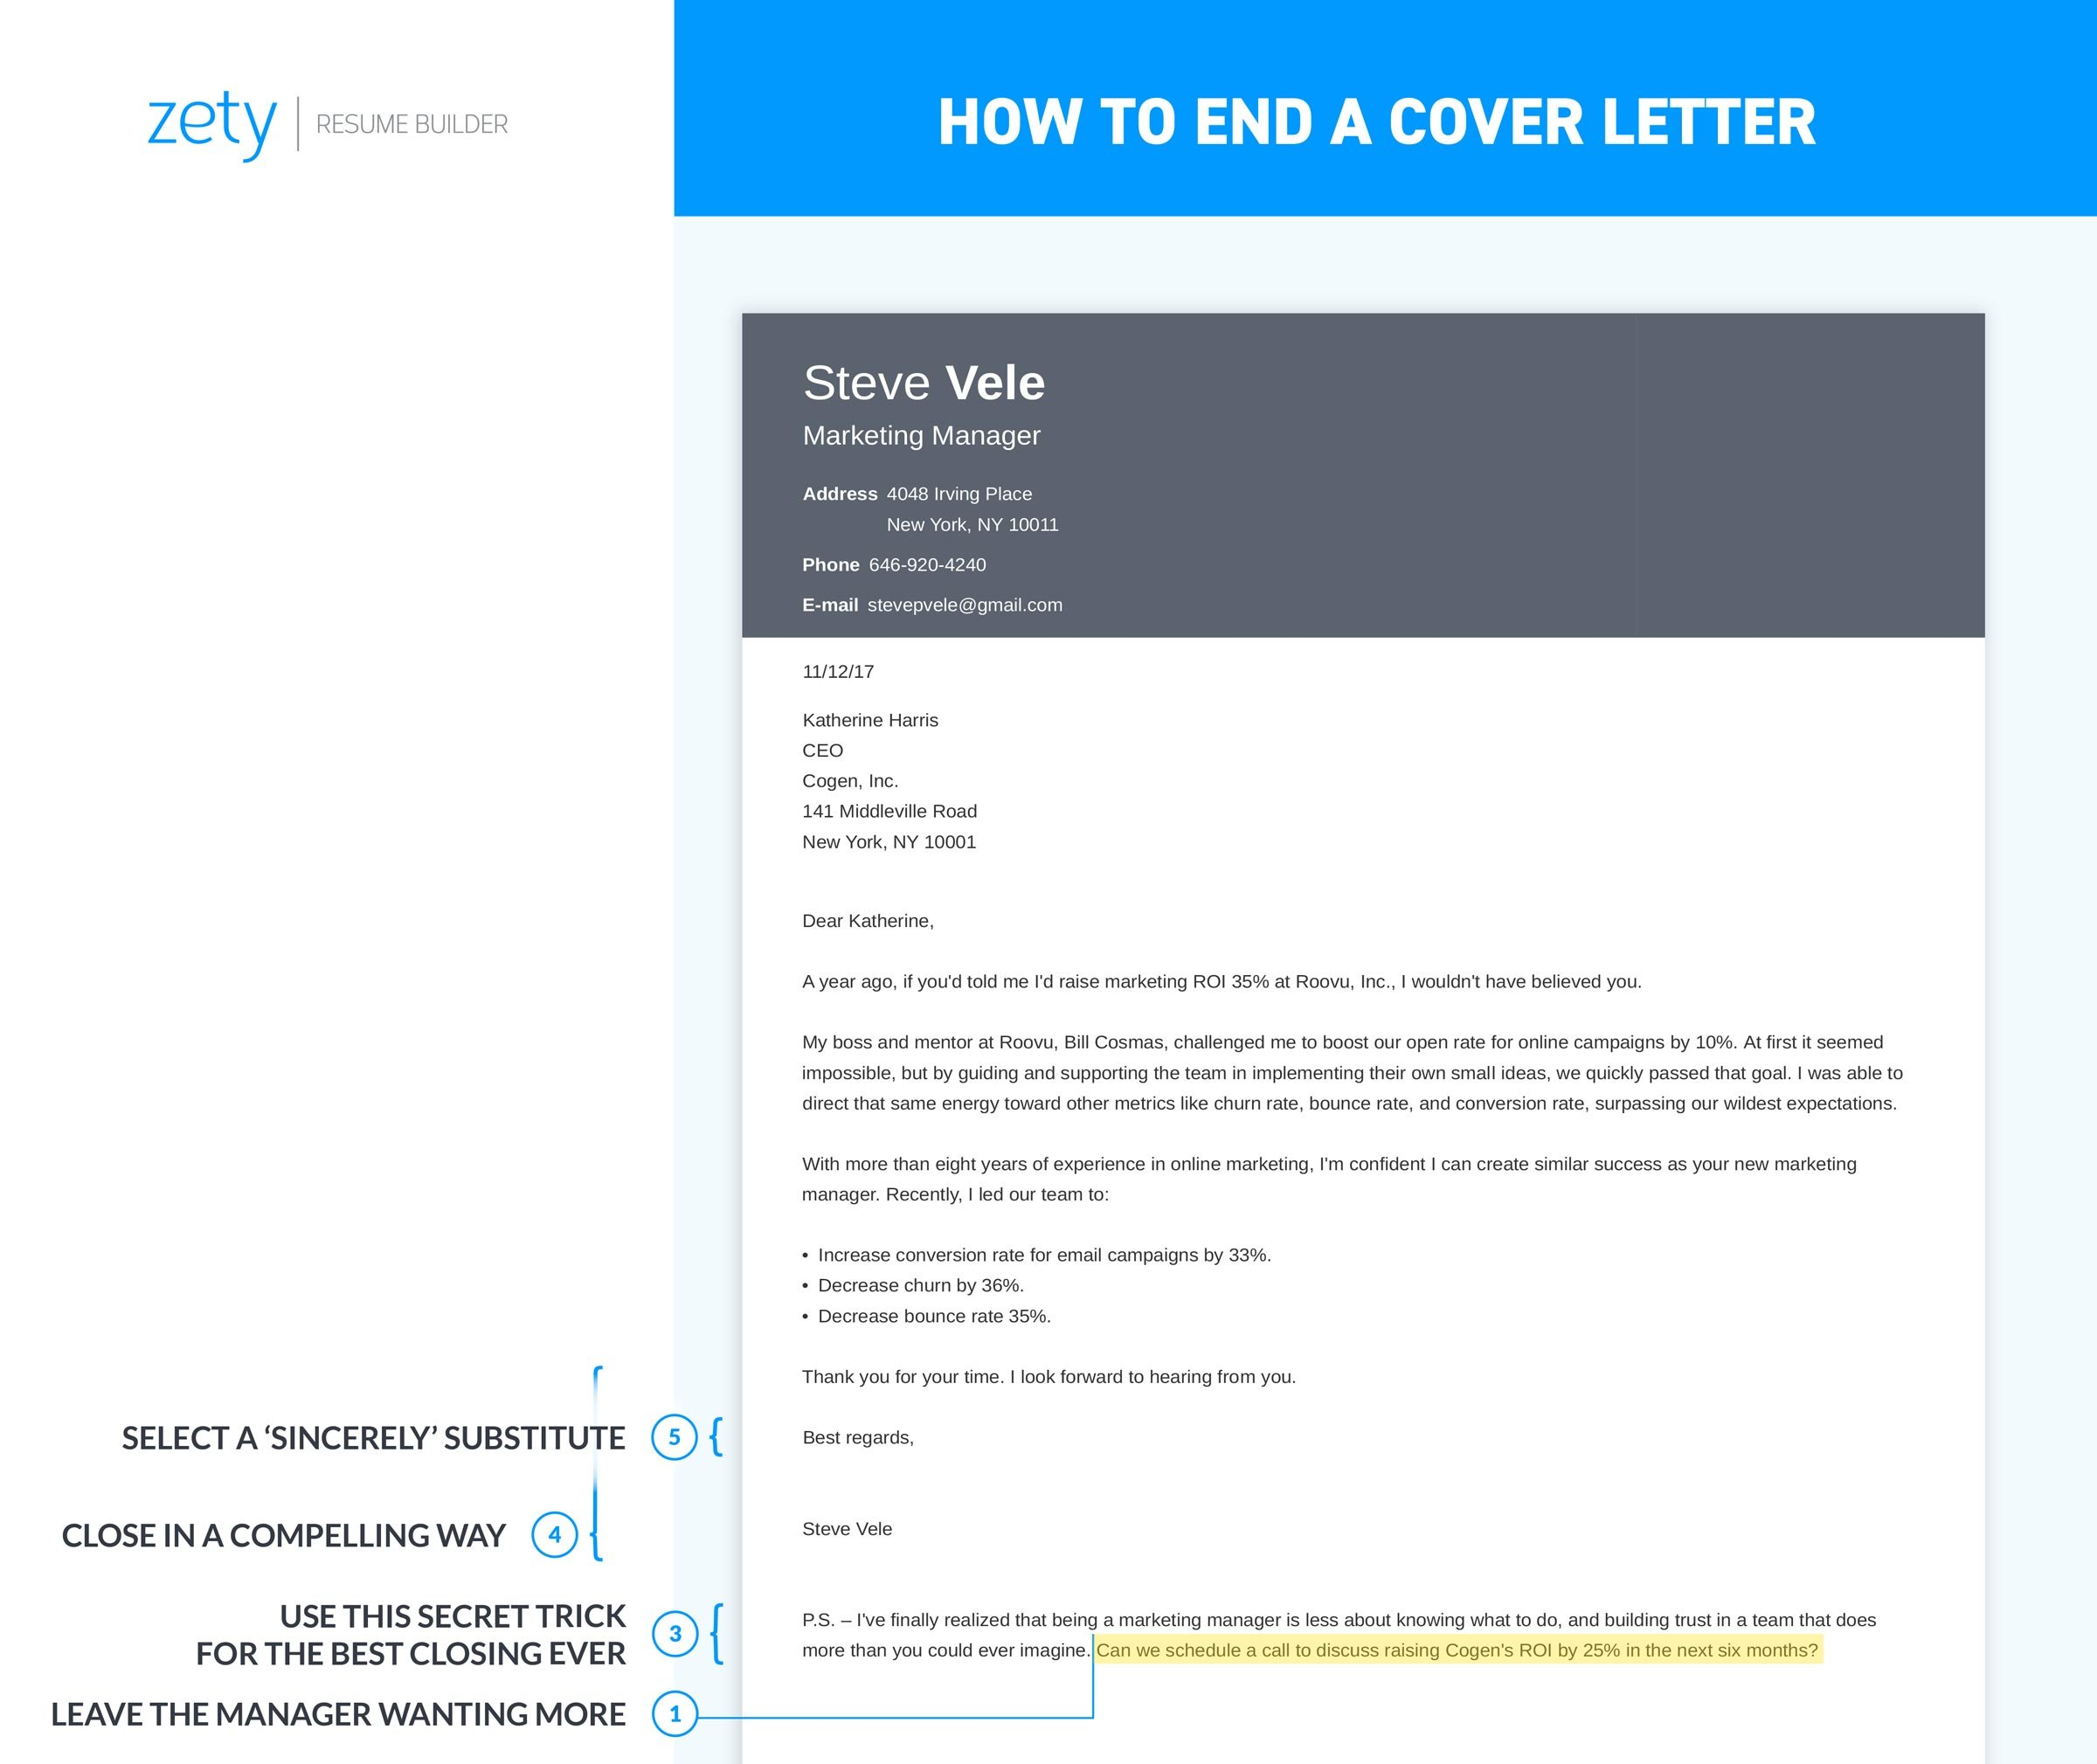 how to end a motivation letter How to End a Cover Letter [20+ Examples of Great Closing Paragraphs]